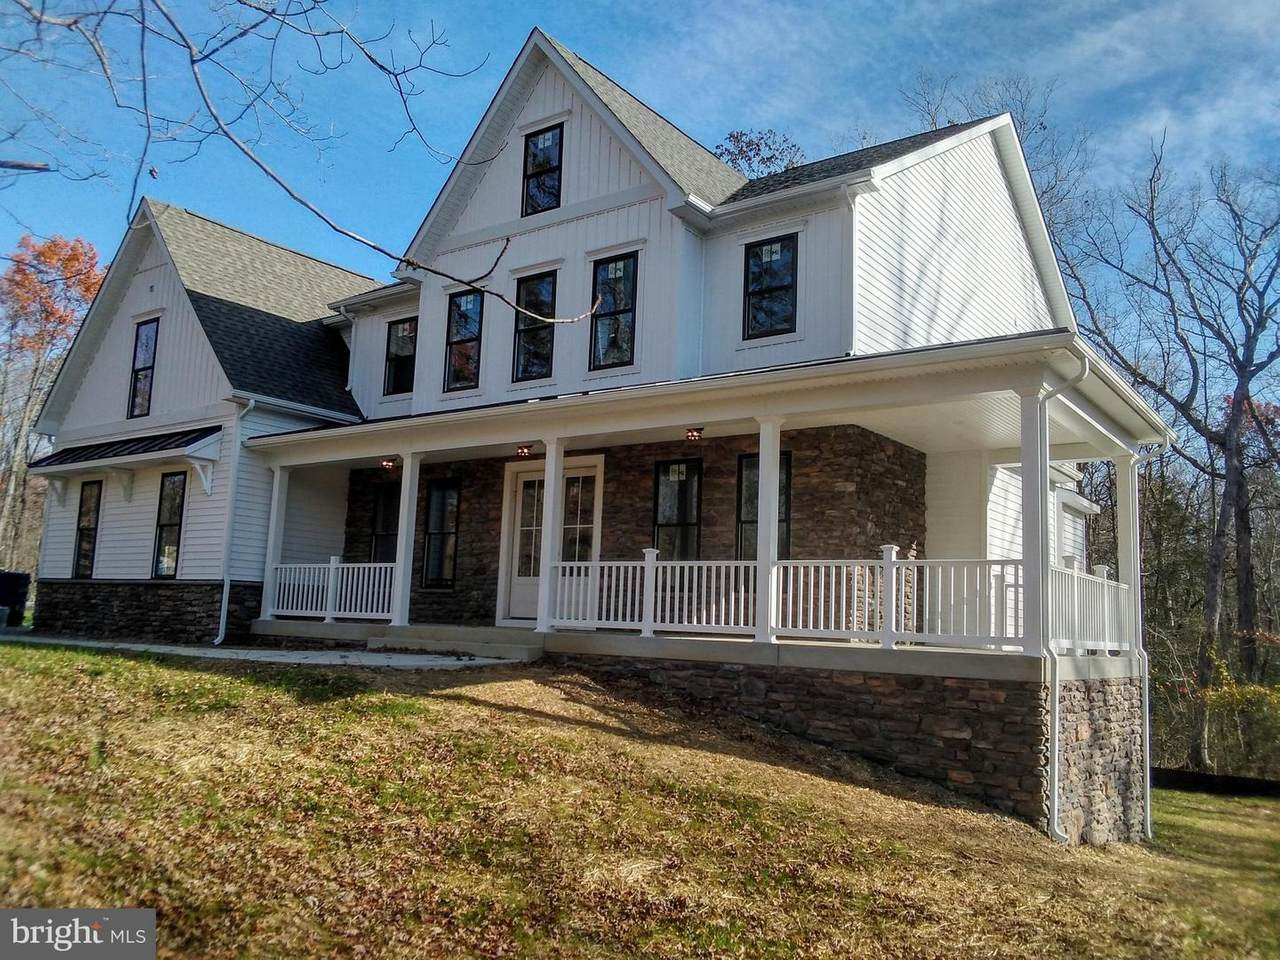 8103 Old Mineral Springs Road - Photo 1